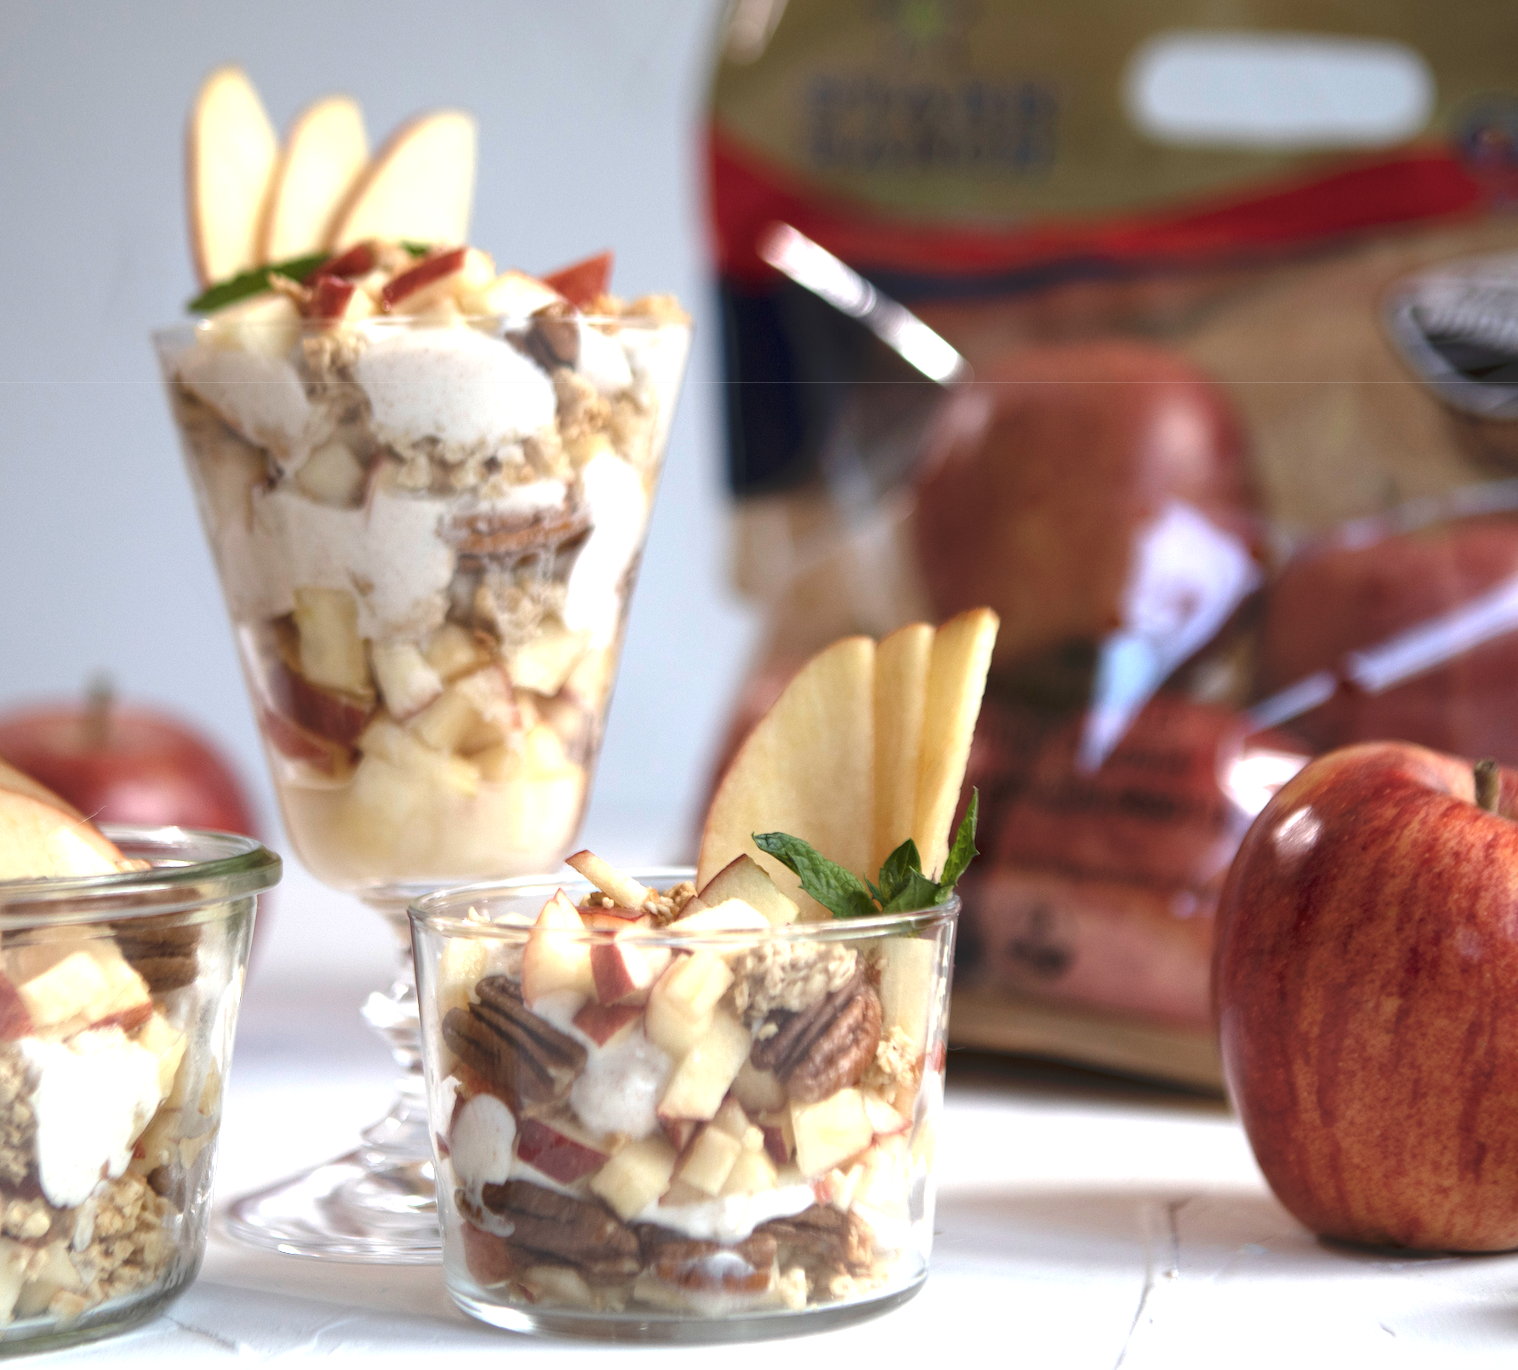 Gala Apple Cinnamon Yogurt Parfait